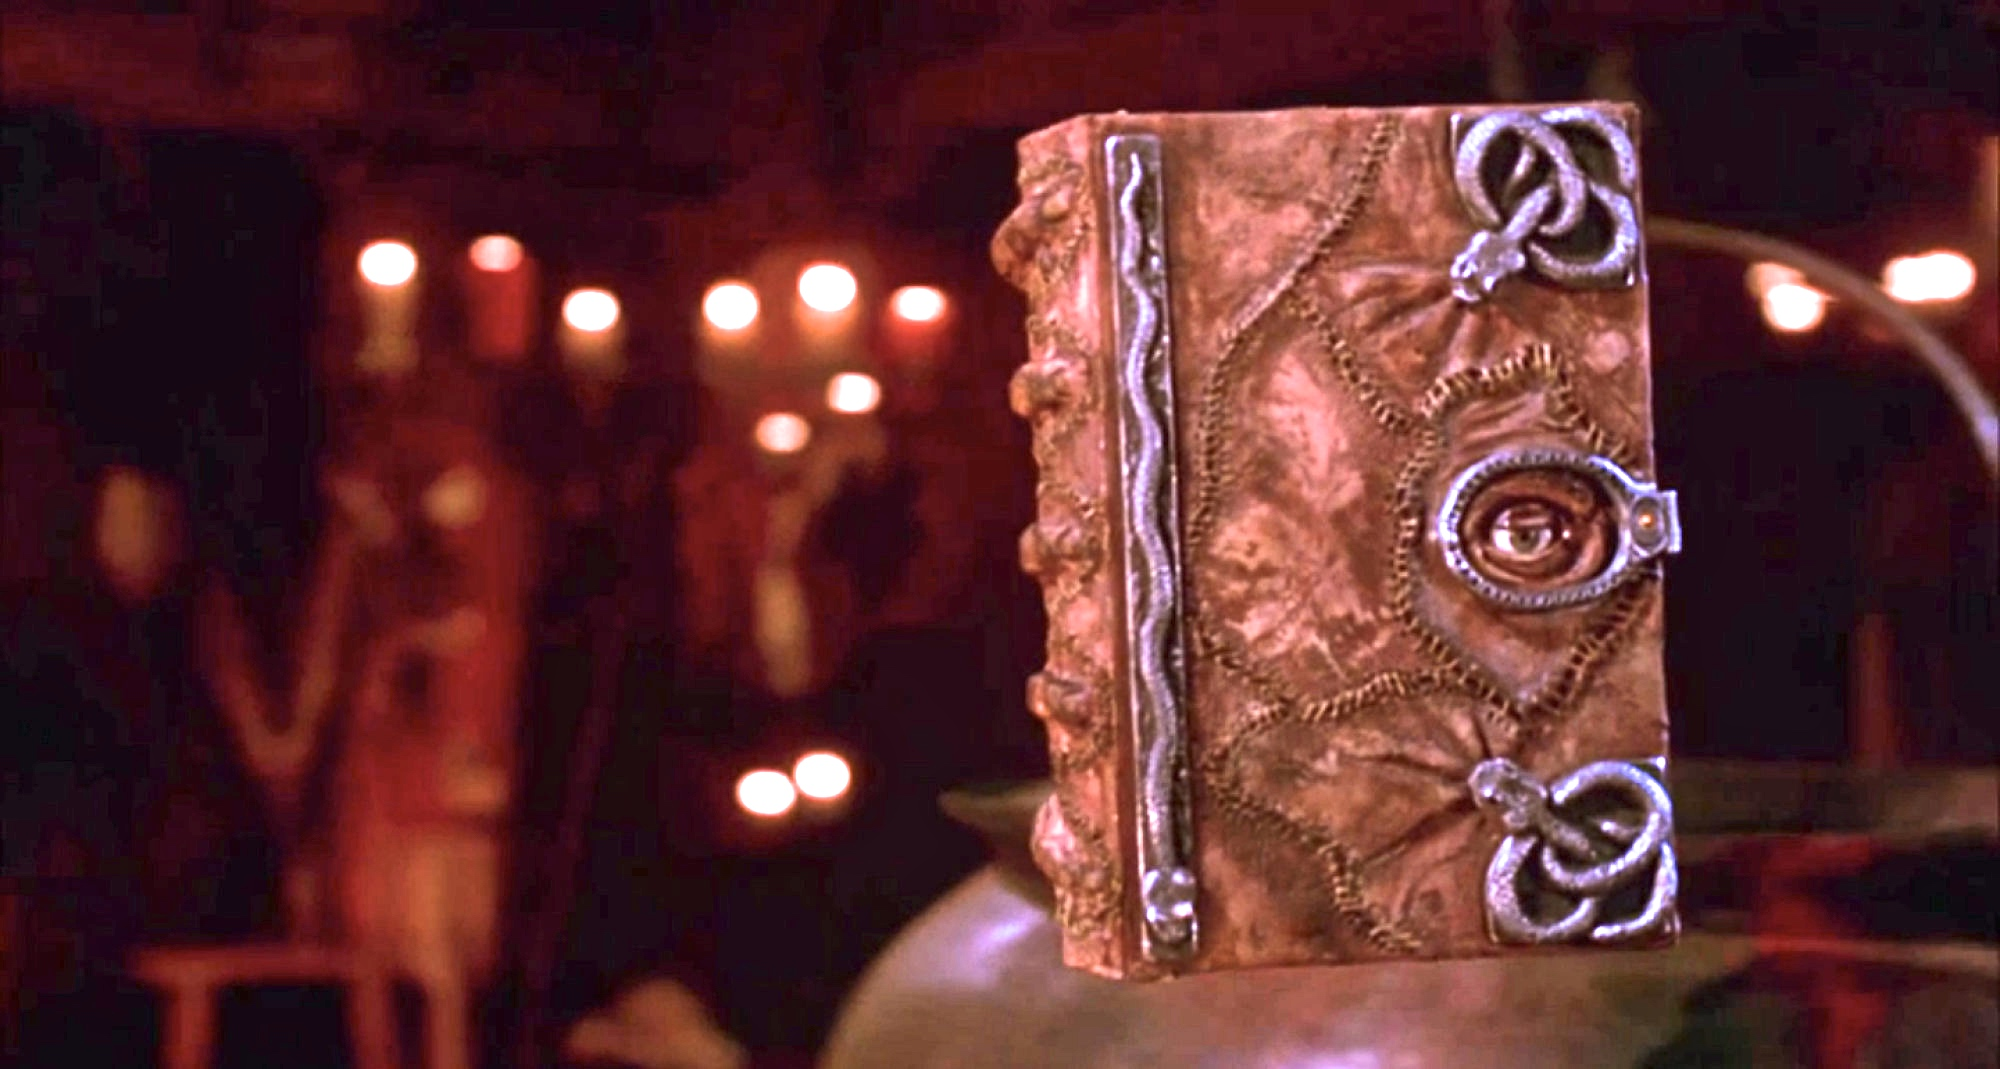 The Magic Book of Spells from Disney's movie Hocus Pocus. A must-see for Halloween.